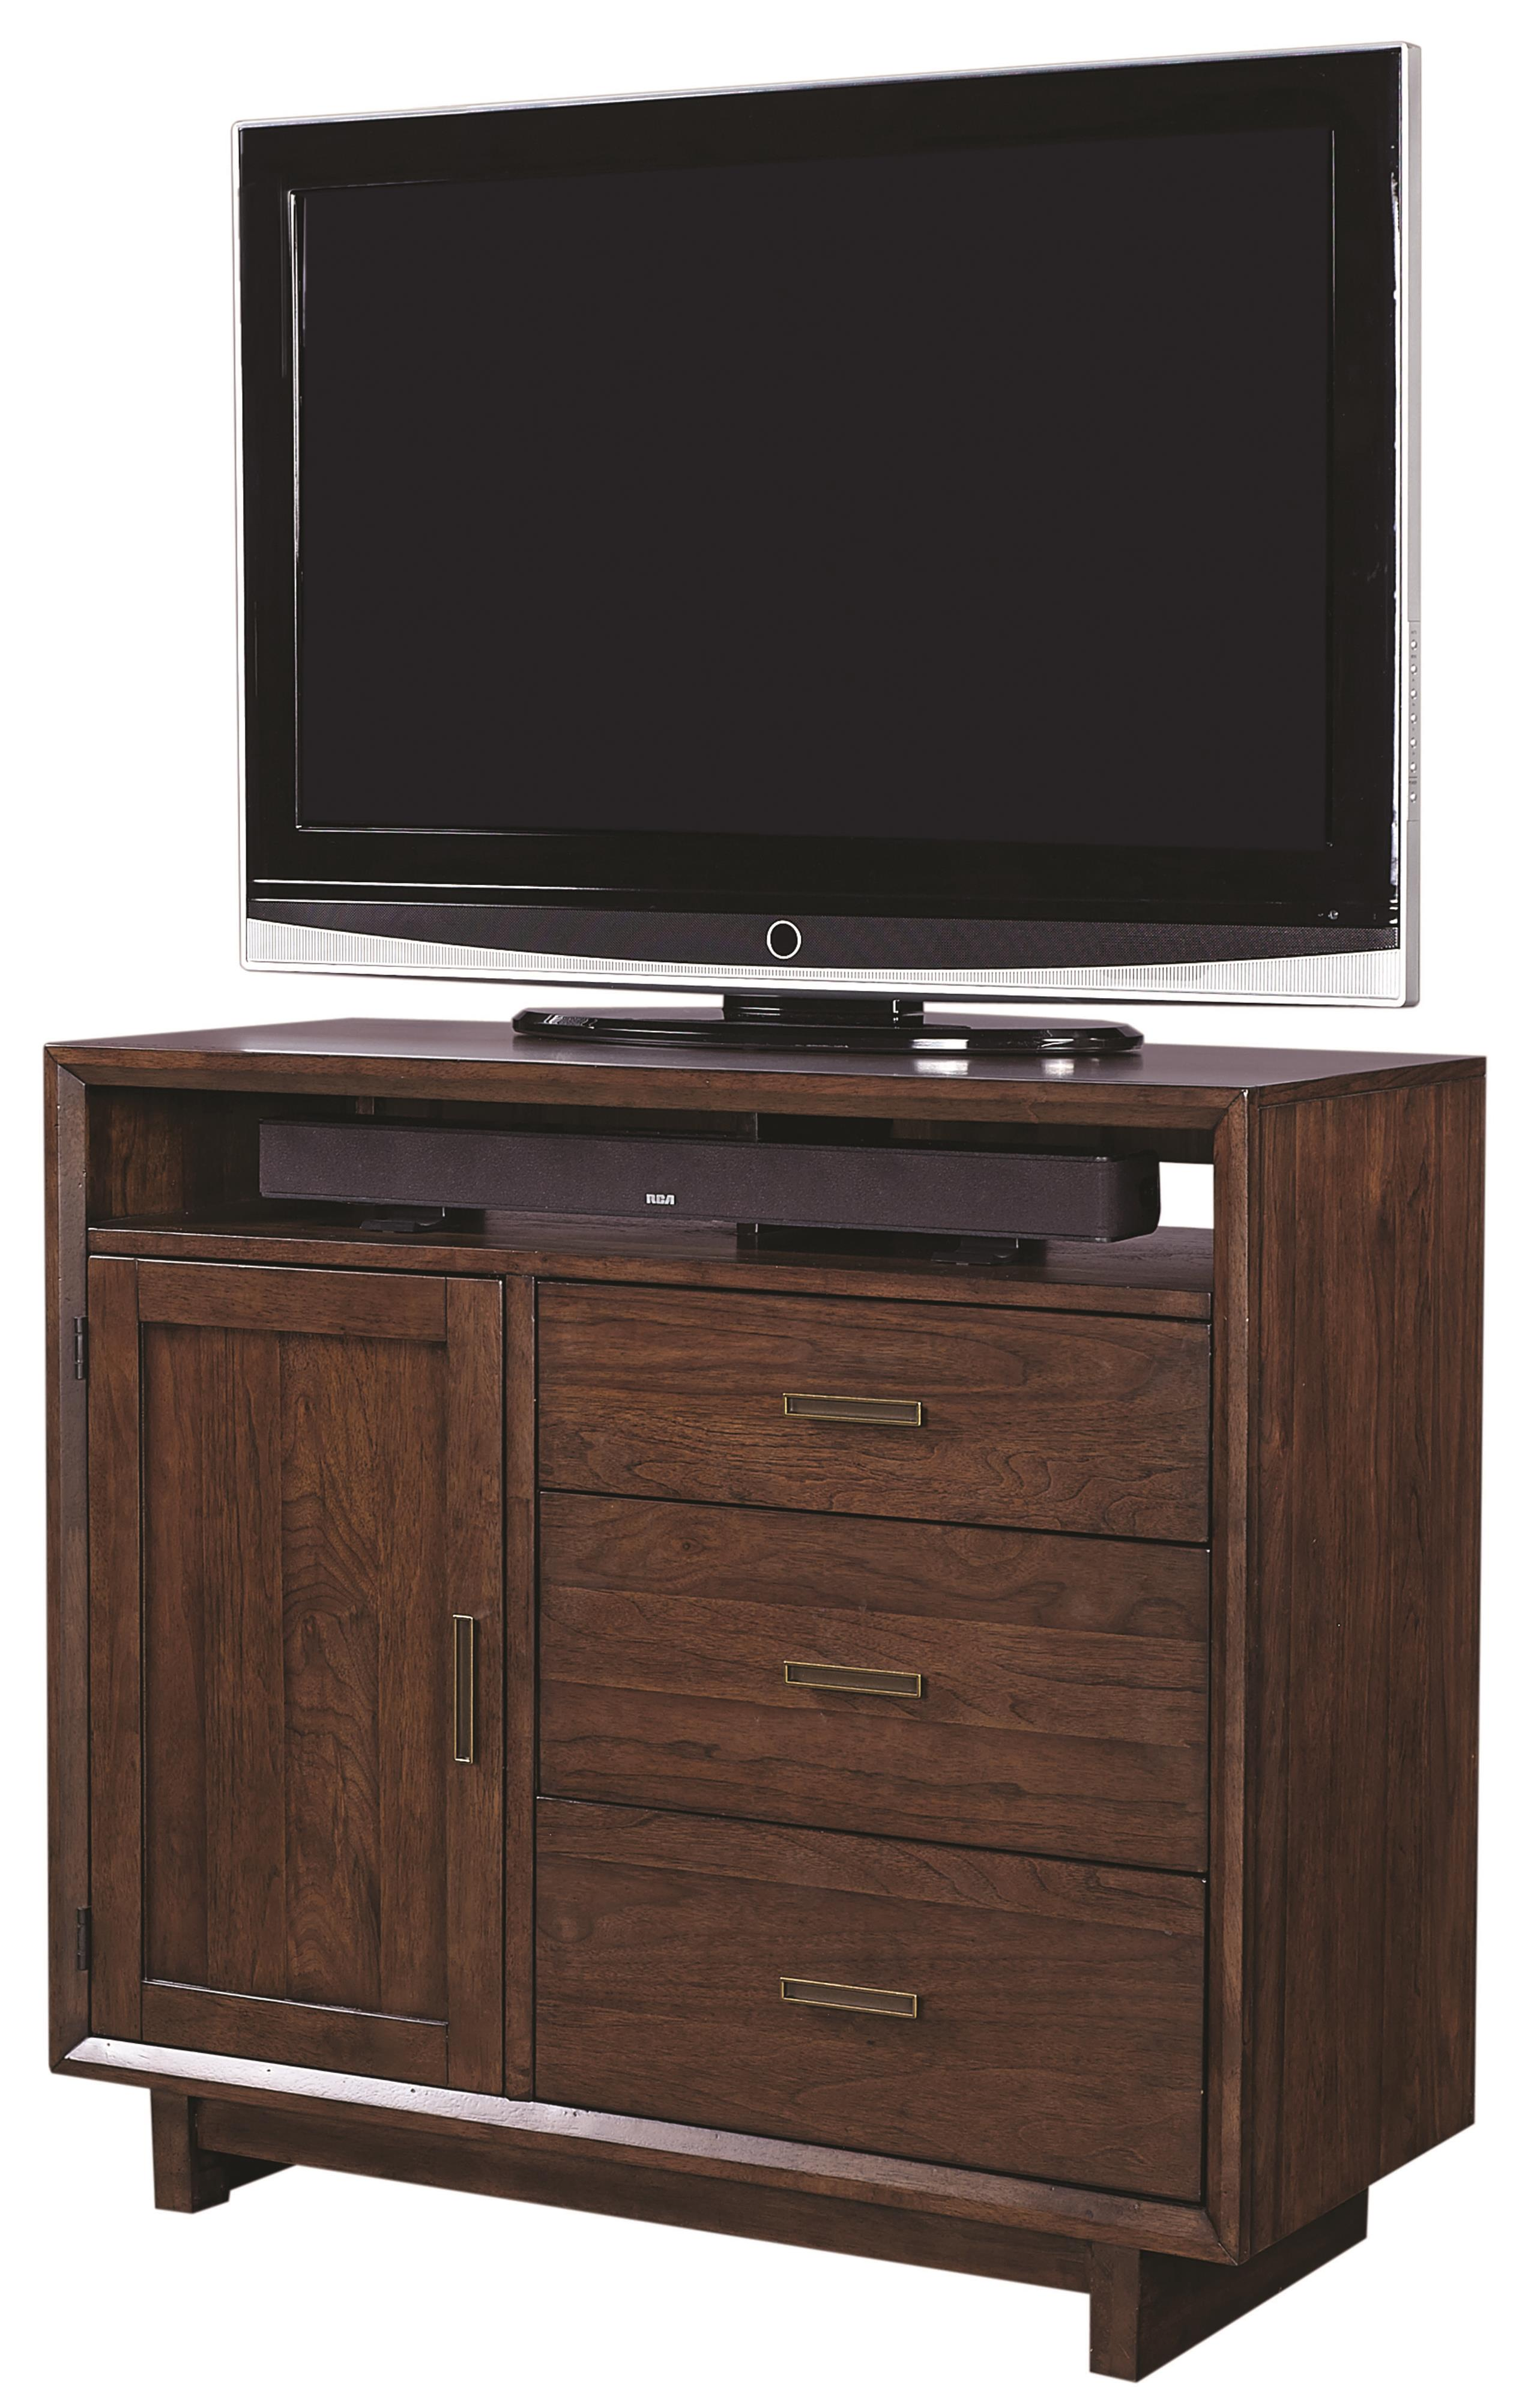 Aspenhome Walnut Heights Media Chest  - Item Number: IWH-485